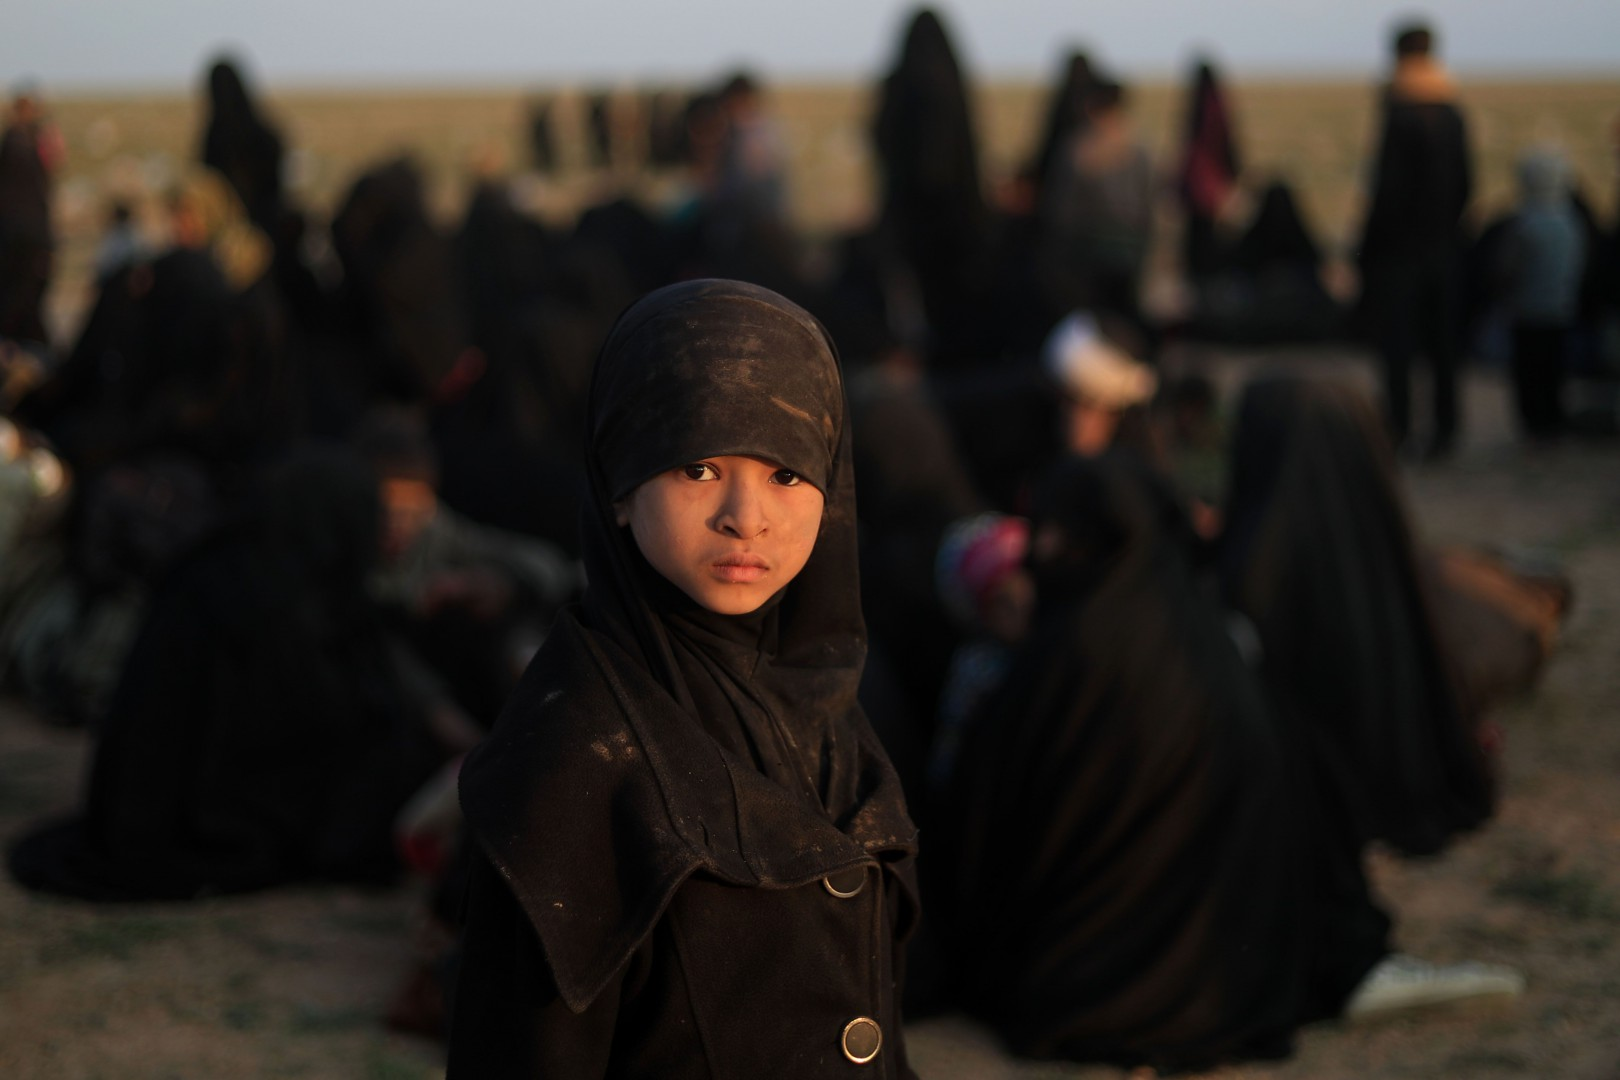 """TOPSHOT - A child who fled the Islamic State (IS) group's last embattled holdout of Baghouz  stands near families waiting to be searched by US-backed Syrian Democratic Forces (SDF) fighters (not pictured) in Syria's northern Deir Ezzor province, on February 22, 2019. - US-backed fighters trucked out civilians from the last speck of the Islamic State group's dying """"caliphate"""" in Syria on February 22, eager to press on with the battle to crush the jihadists. More than four years after IS overran large parts of Syria and neighbouring Iraq, and declared a """"caliphate"""", they have lost all of it but a tiny patch in the village of Baghouz near the Iraqi border. (Photo by Delil SOULEIMAN / AFP)"""